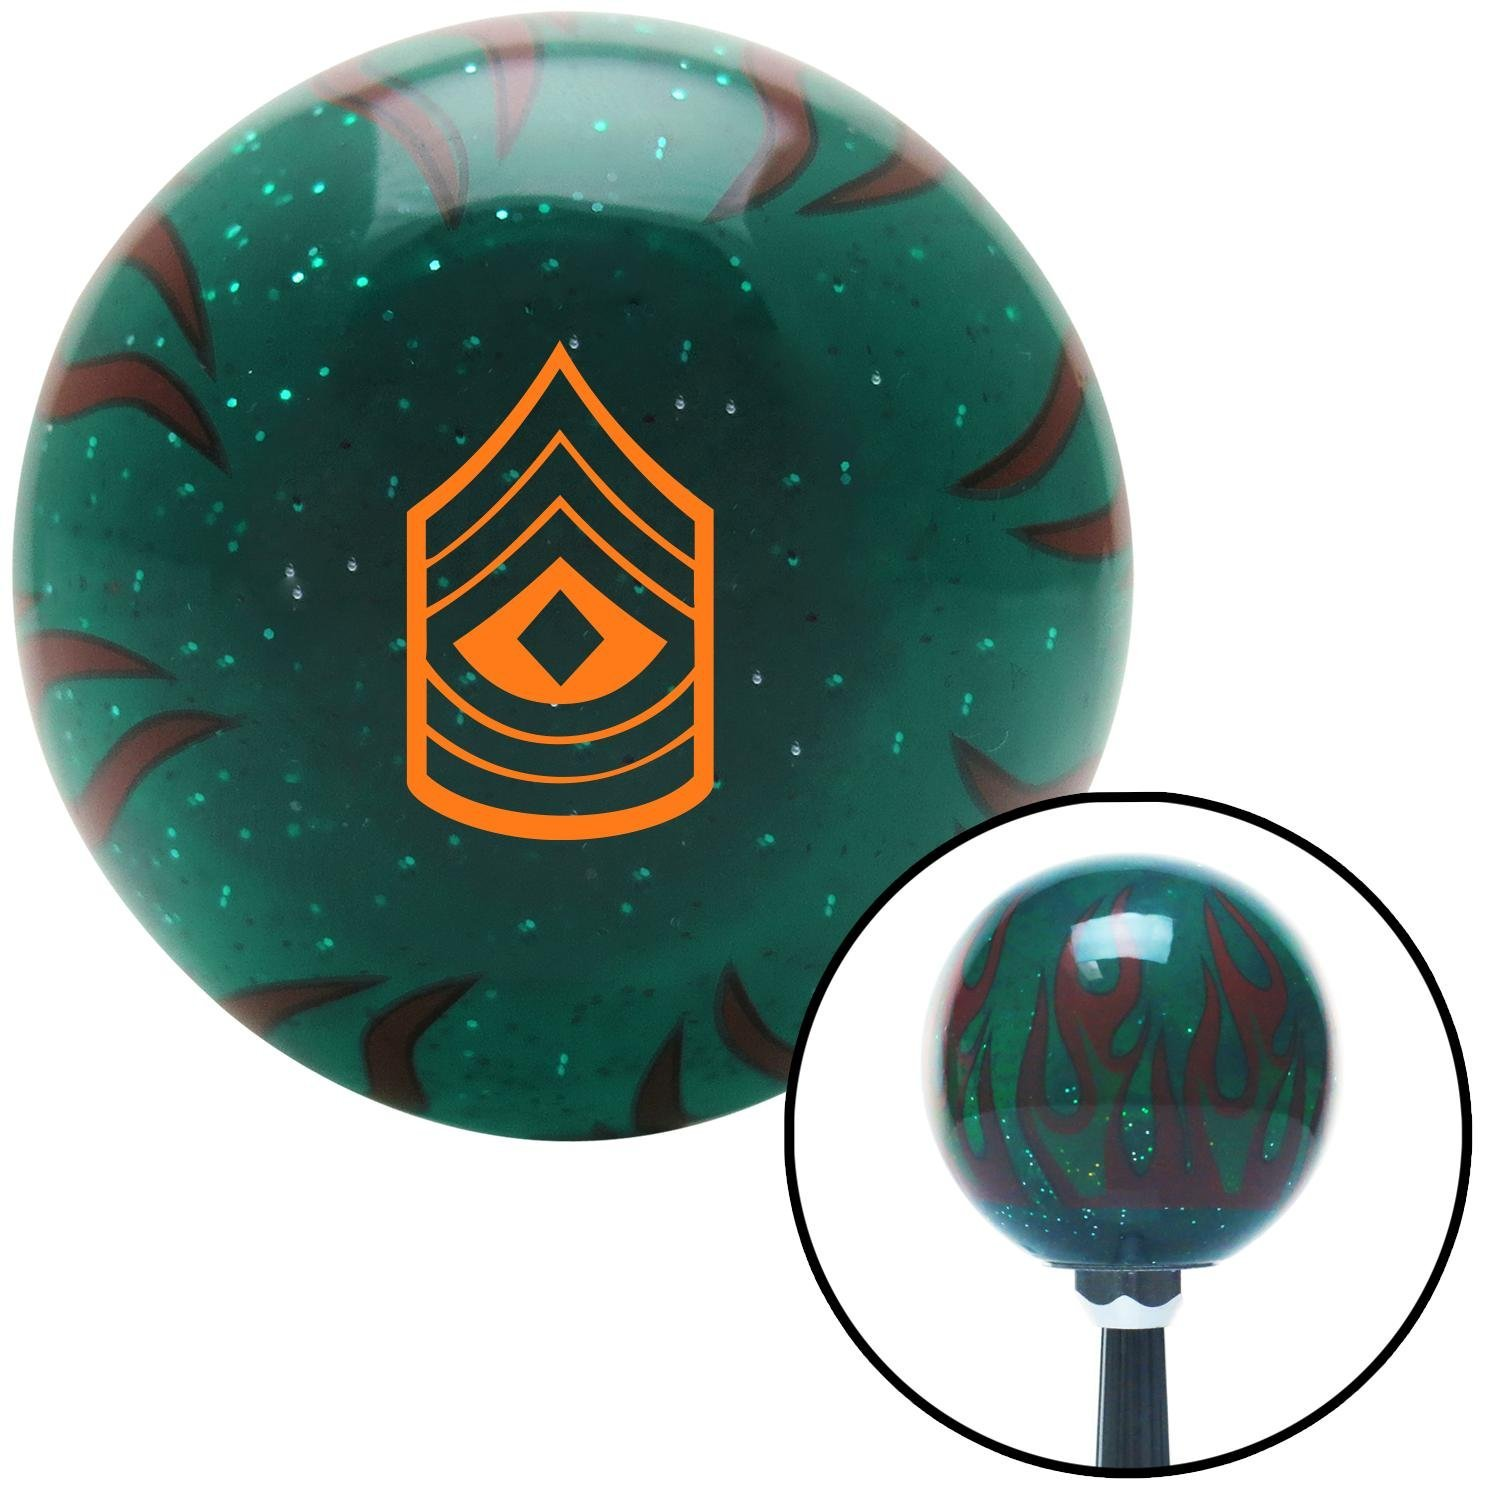 Orange 08 First Sergeant American Shifter 266544 Green Flame Metal Flake Shift Knob with M16 x 1.5 Insert